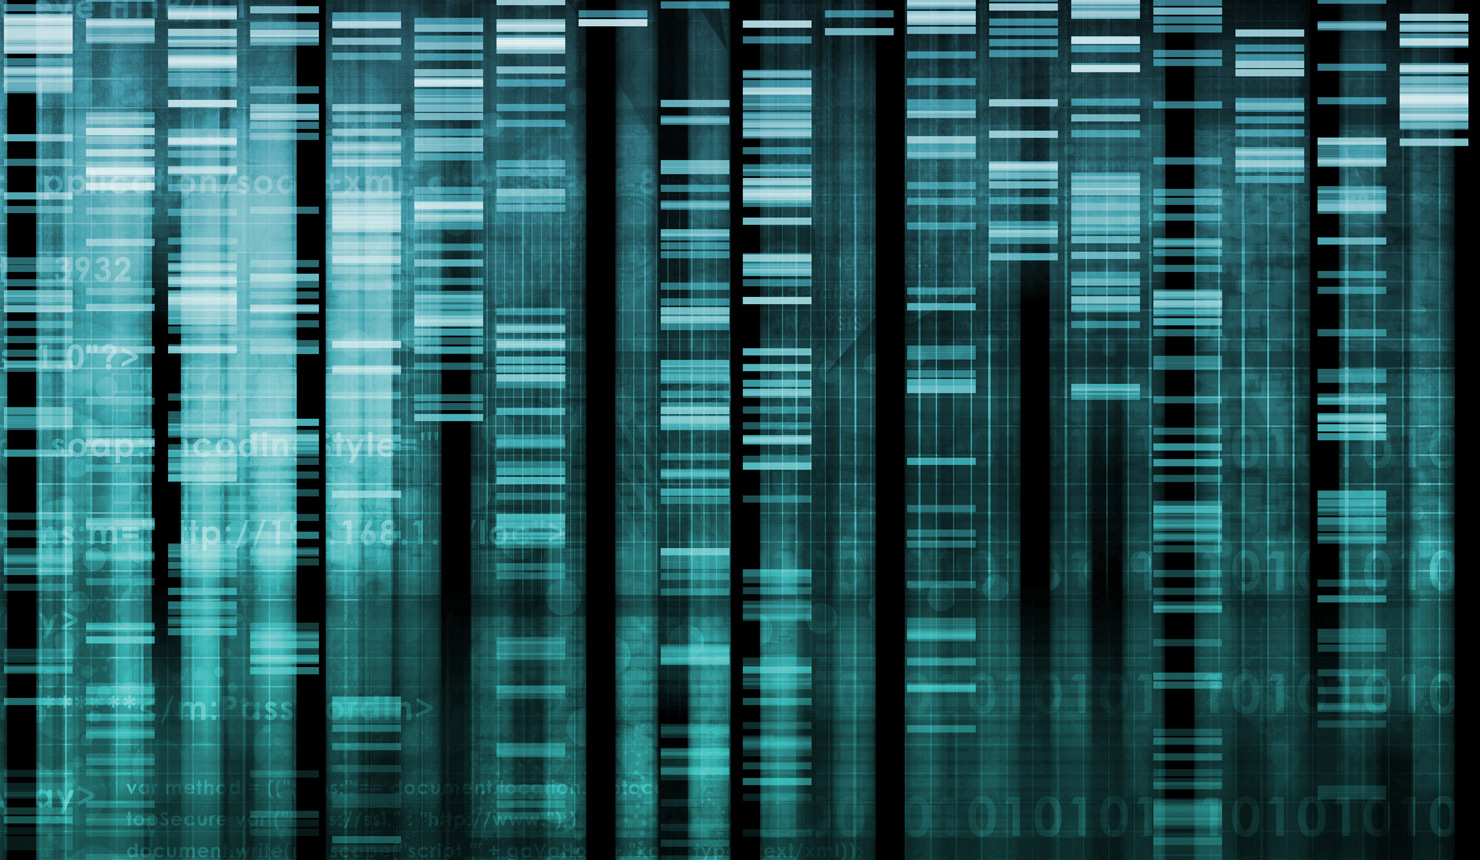 Google-style Ranking Used to Describe Gene Connectivity